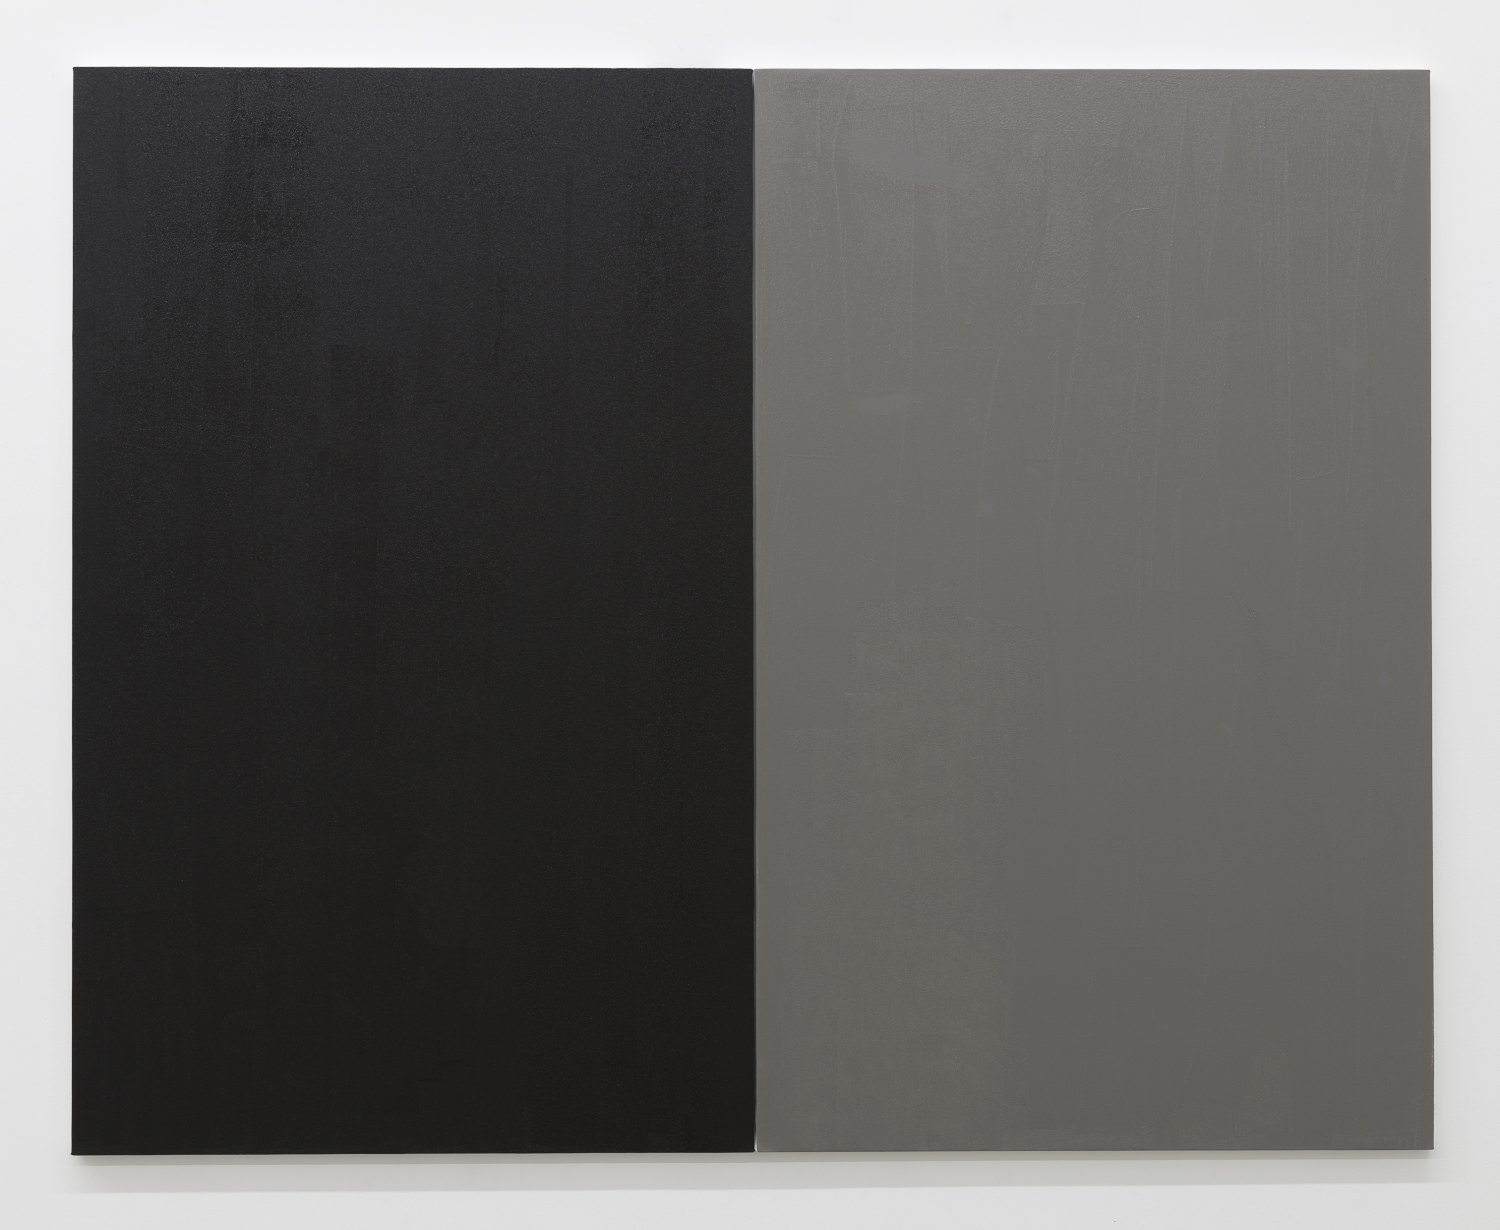 Claire Fontaine Untitled (Fresh monochrome/ black / grey), 2016 Anti climb paint, wood and canvas, 160 x 200 x 3 cm